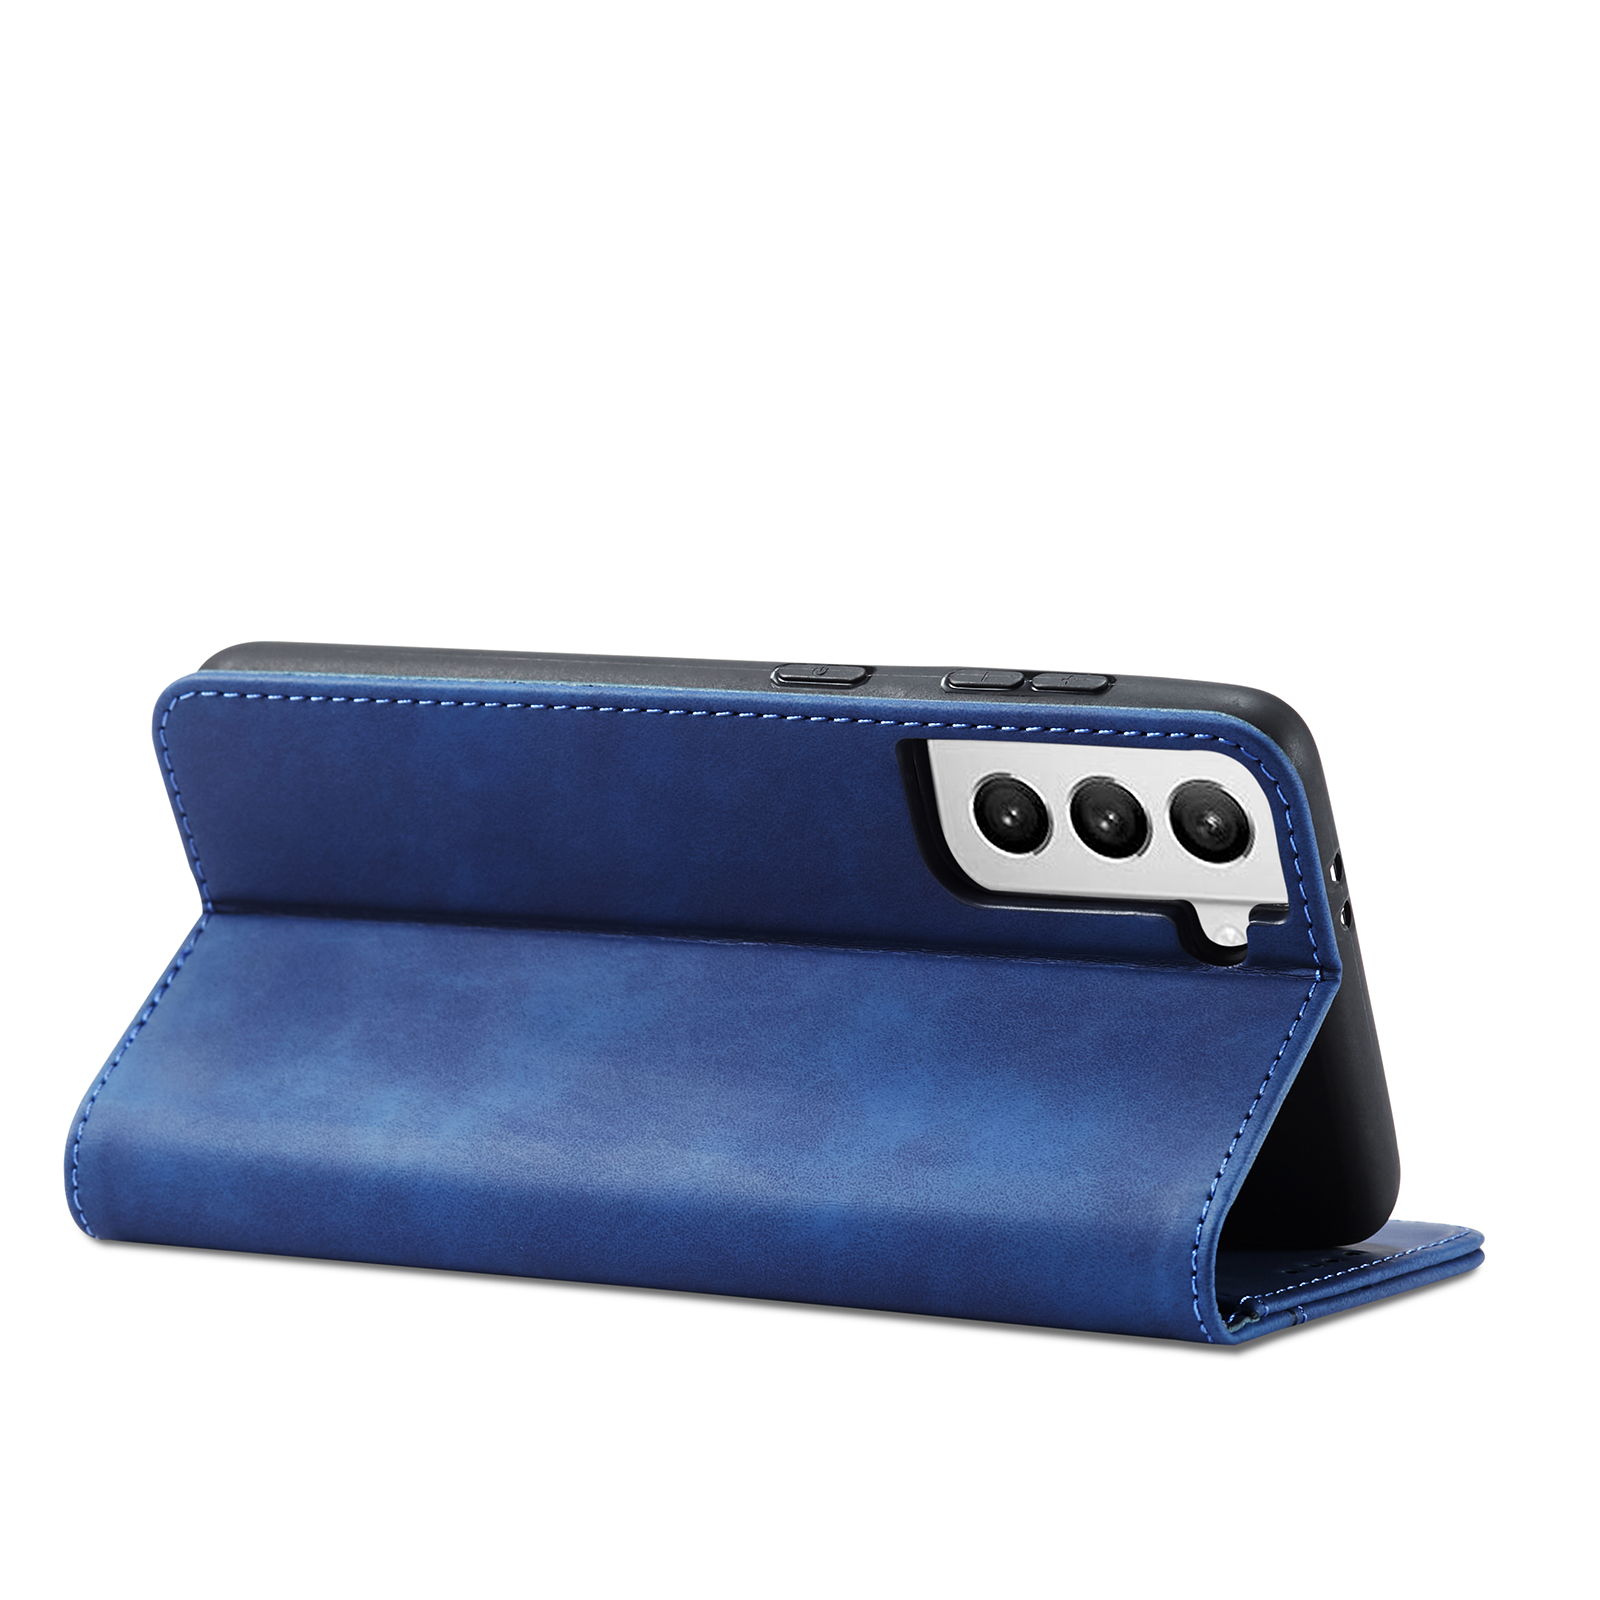 Mobile Phone Case For Samsung S30 Flip Phone Case Protective Case Cover Blue